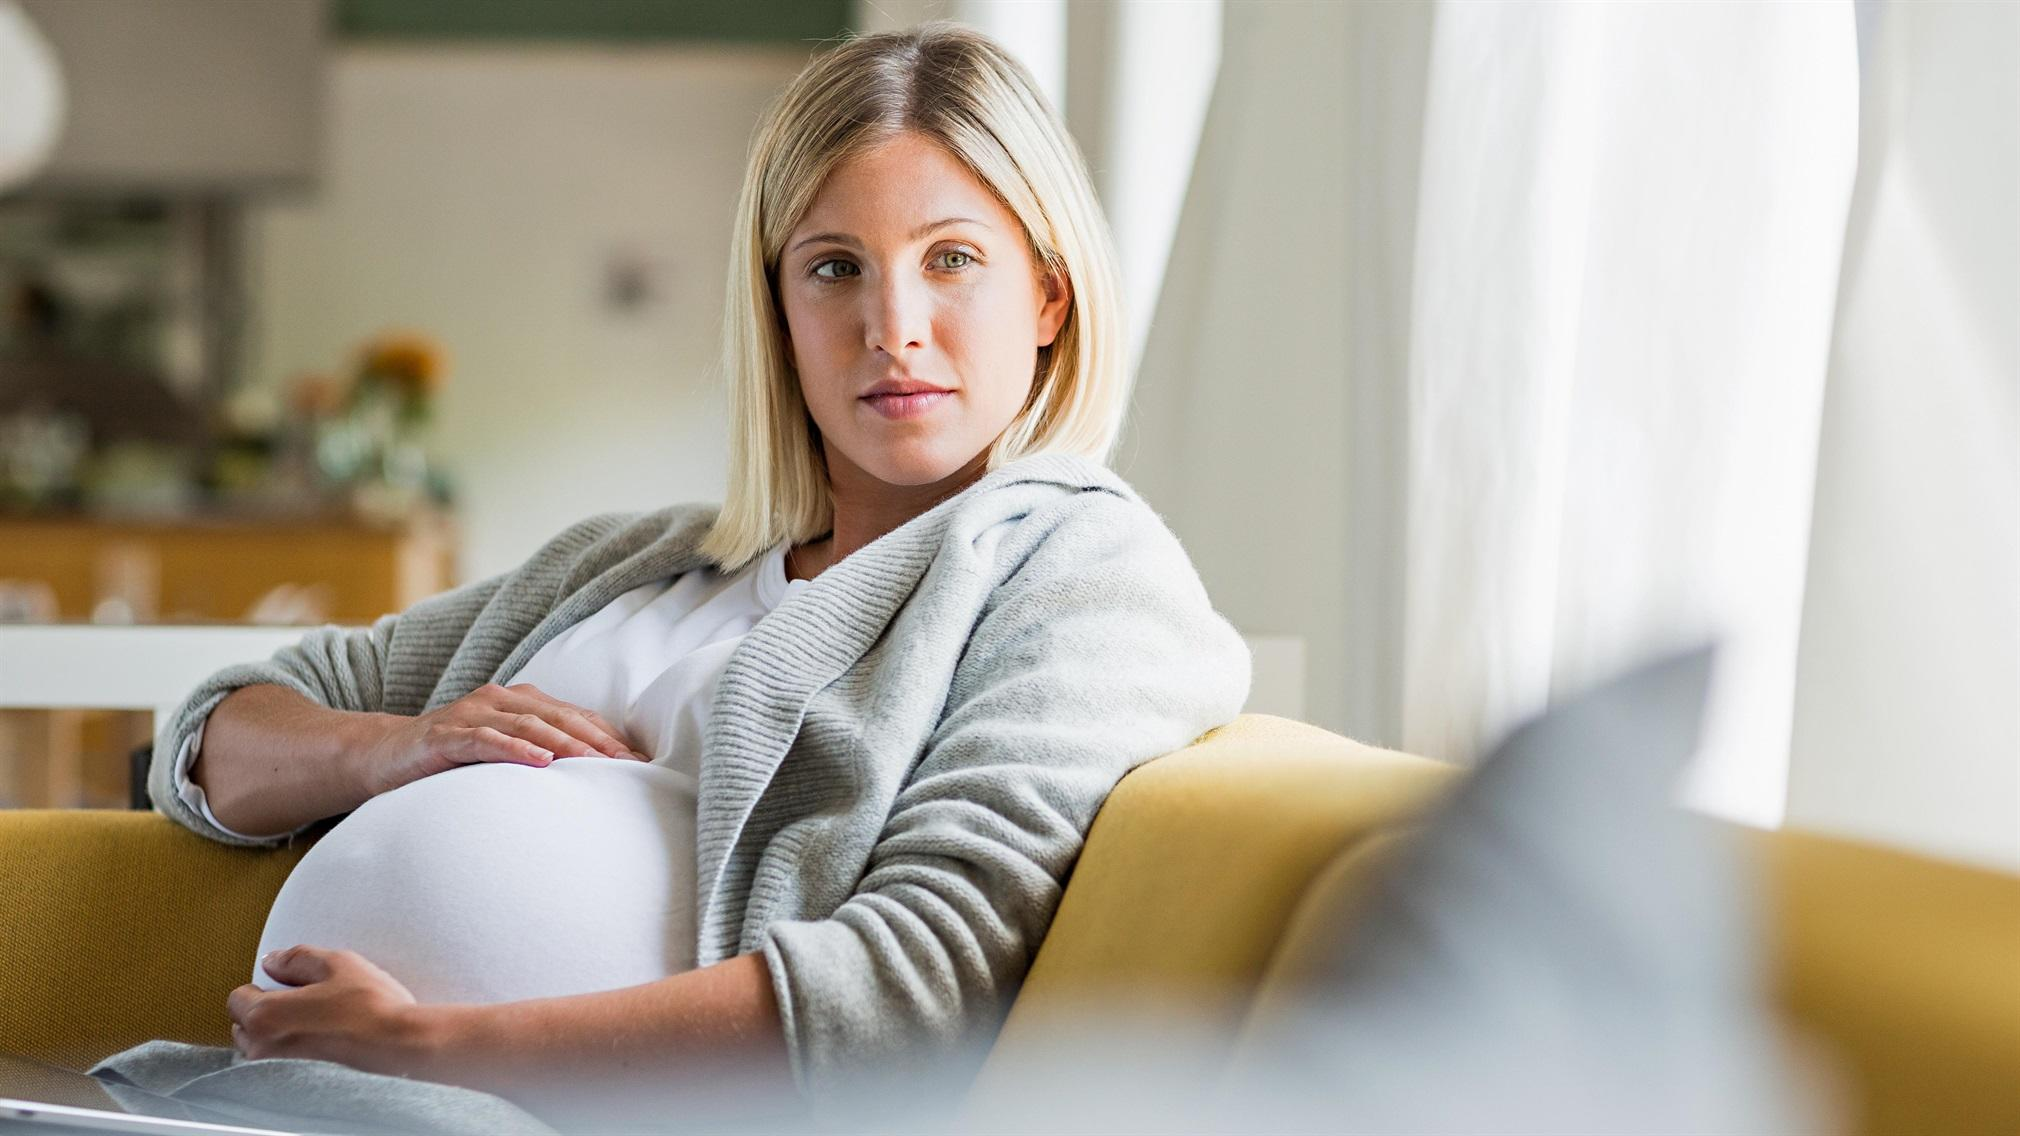 pregnancy how to know gender